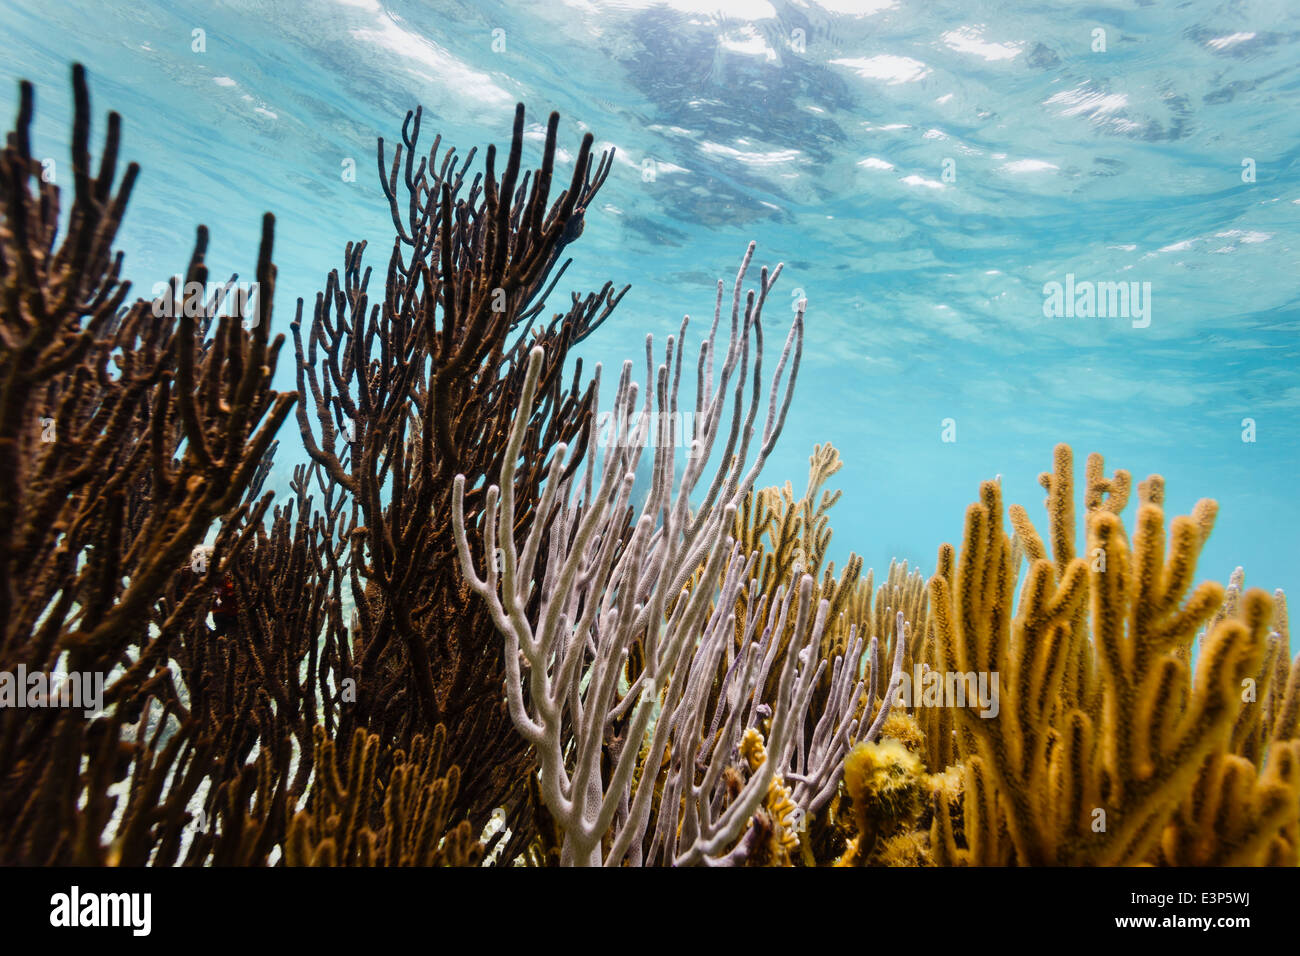 Close up underwater view of colorful branch corals living on the coral reef off the east coast of Belize - Stock Image